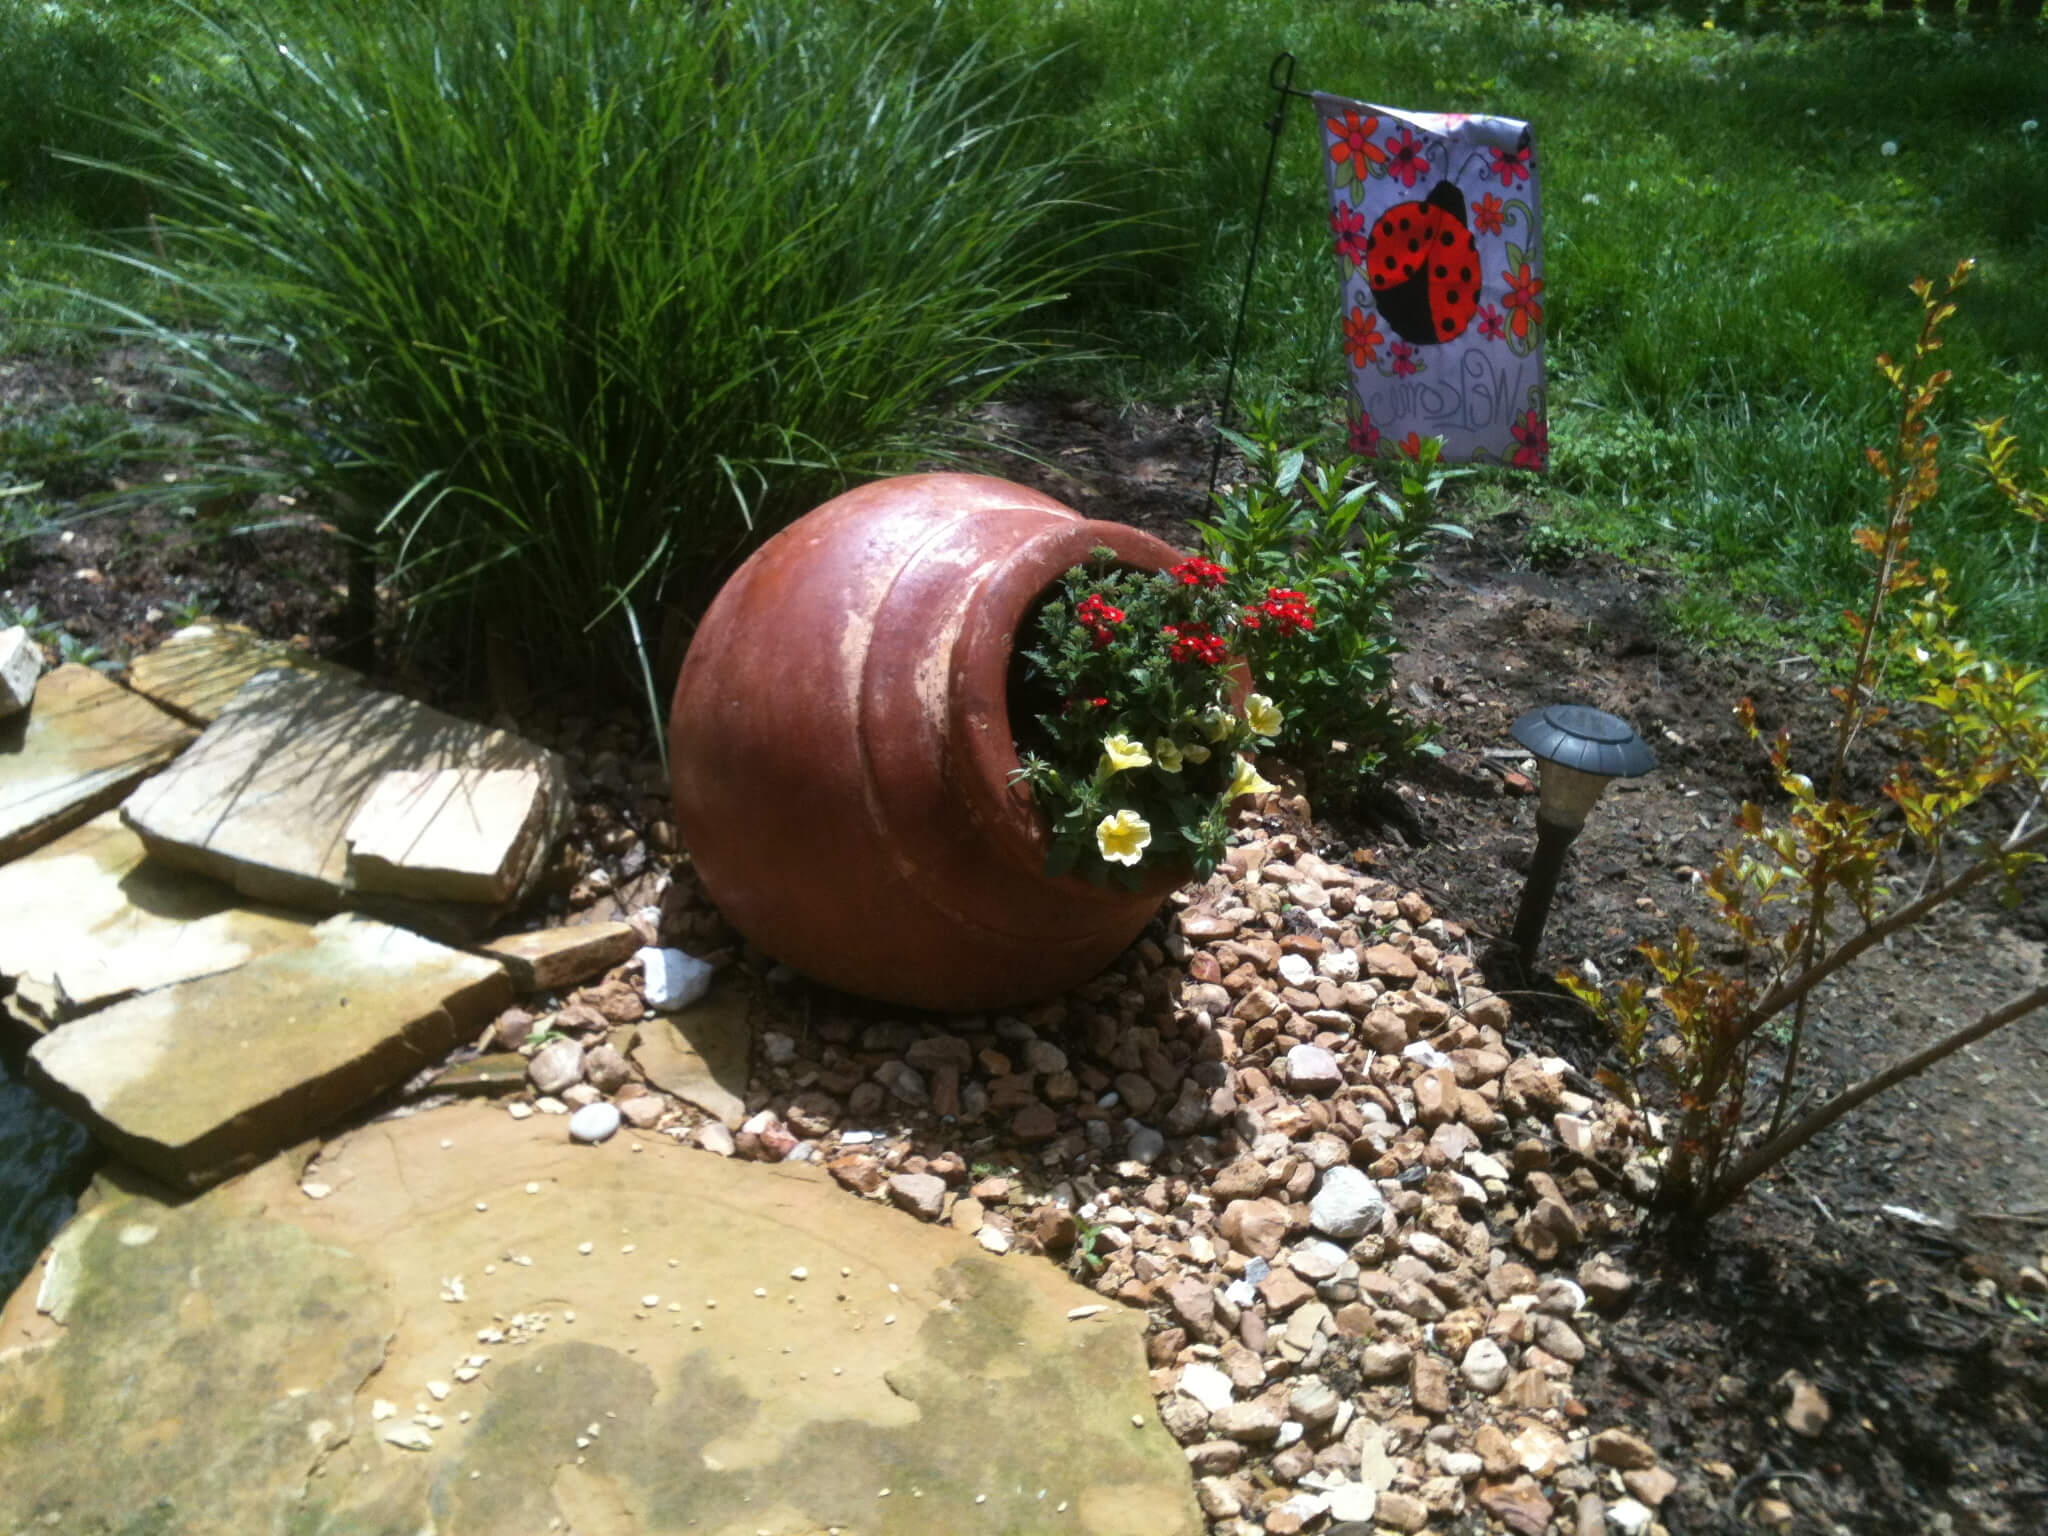 Tipped Pot with Bright Flowers